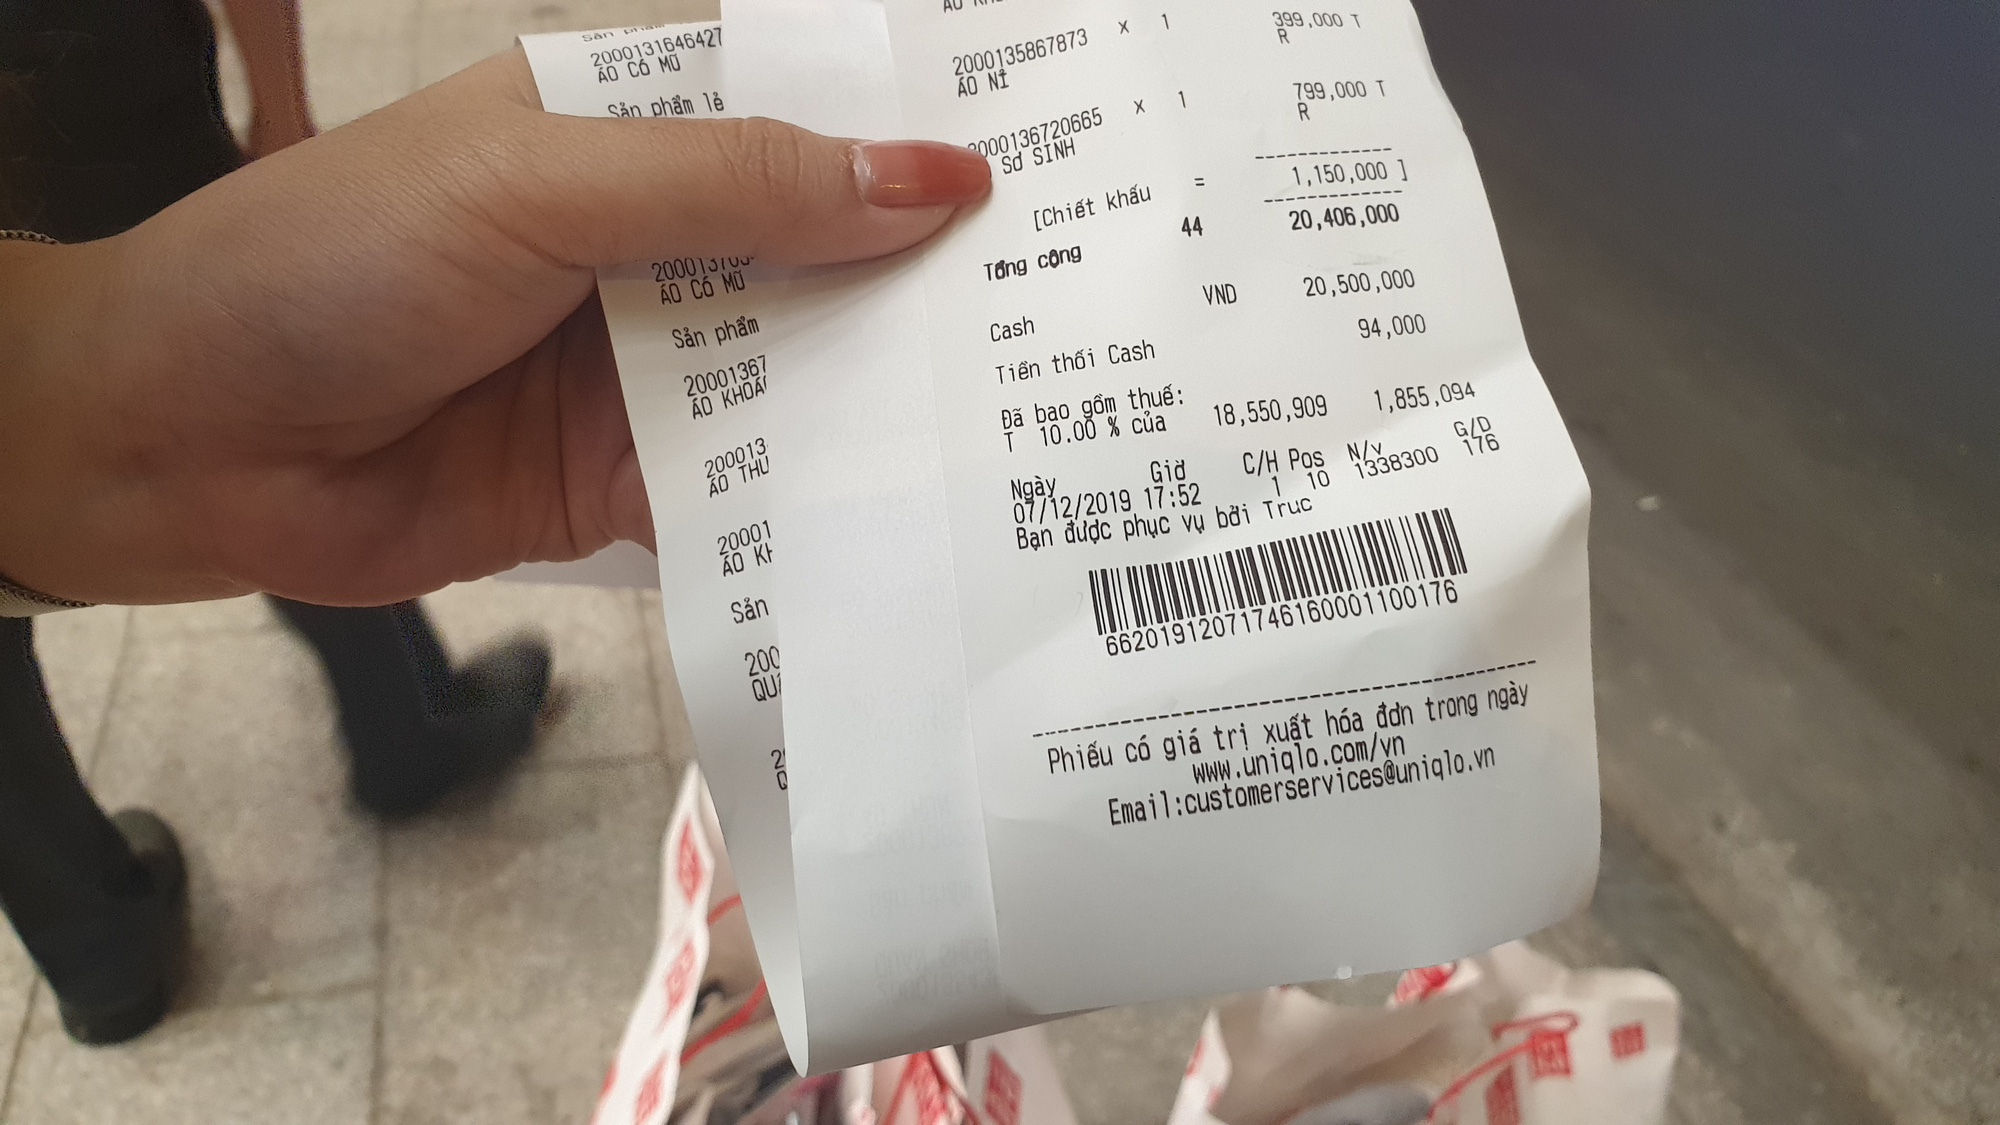 A customer shows her receipt worth over VND20 million (US$860). Photo: Bong Mai / Tuoi Tre